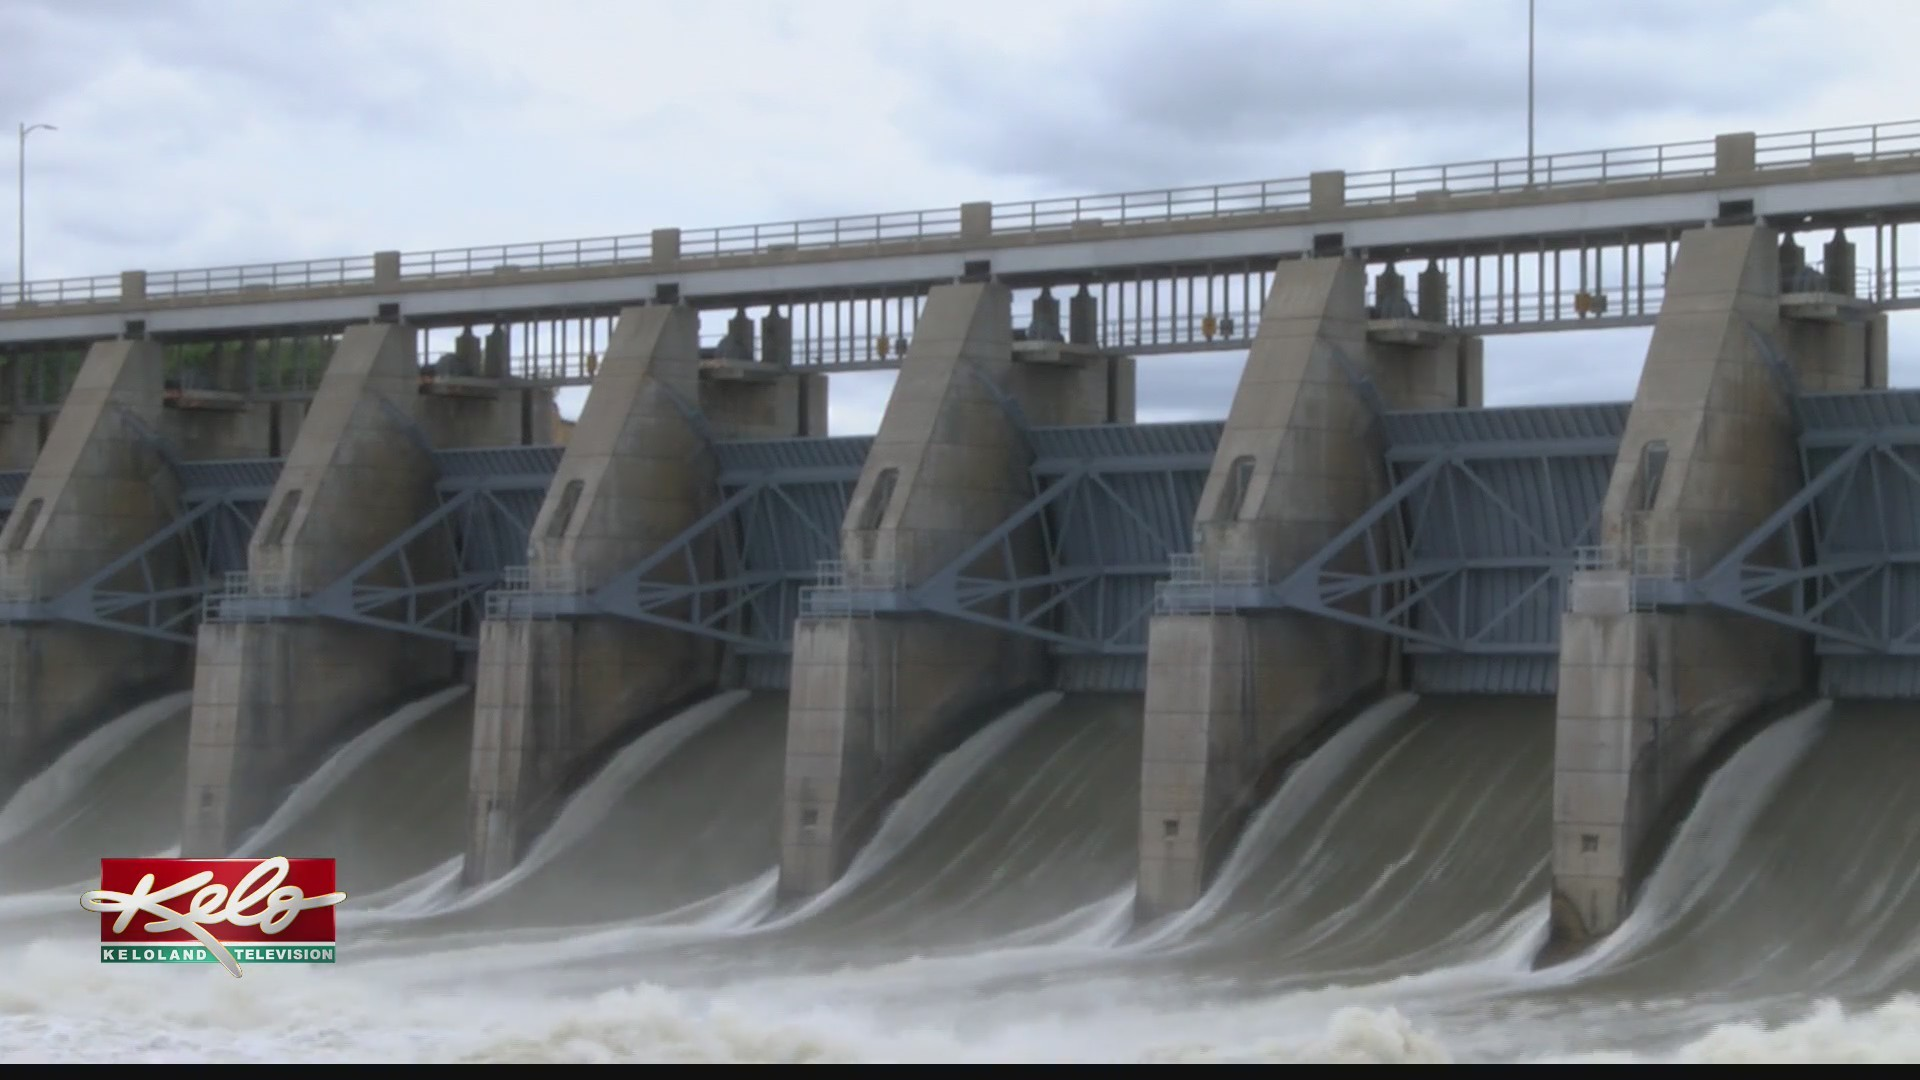 U.S. Army Corps of Engineers increases water flow at Gavin's Point Dam